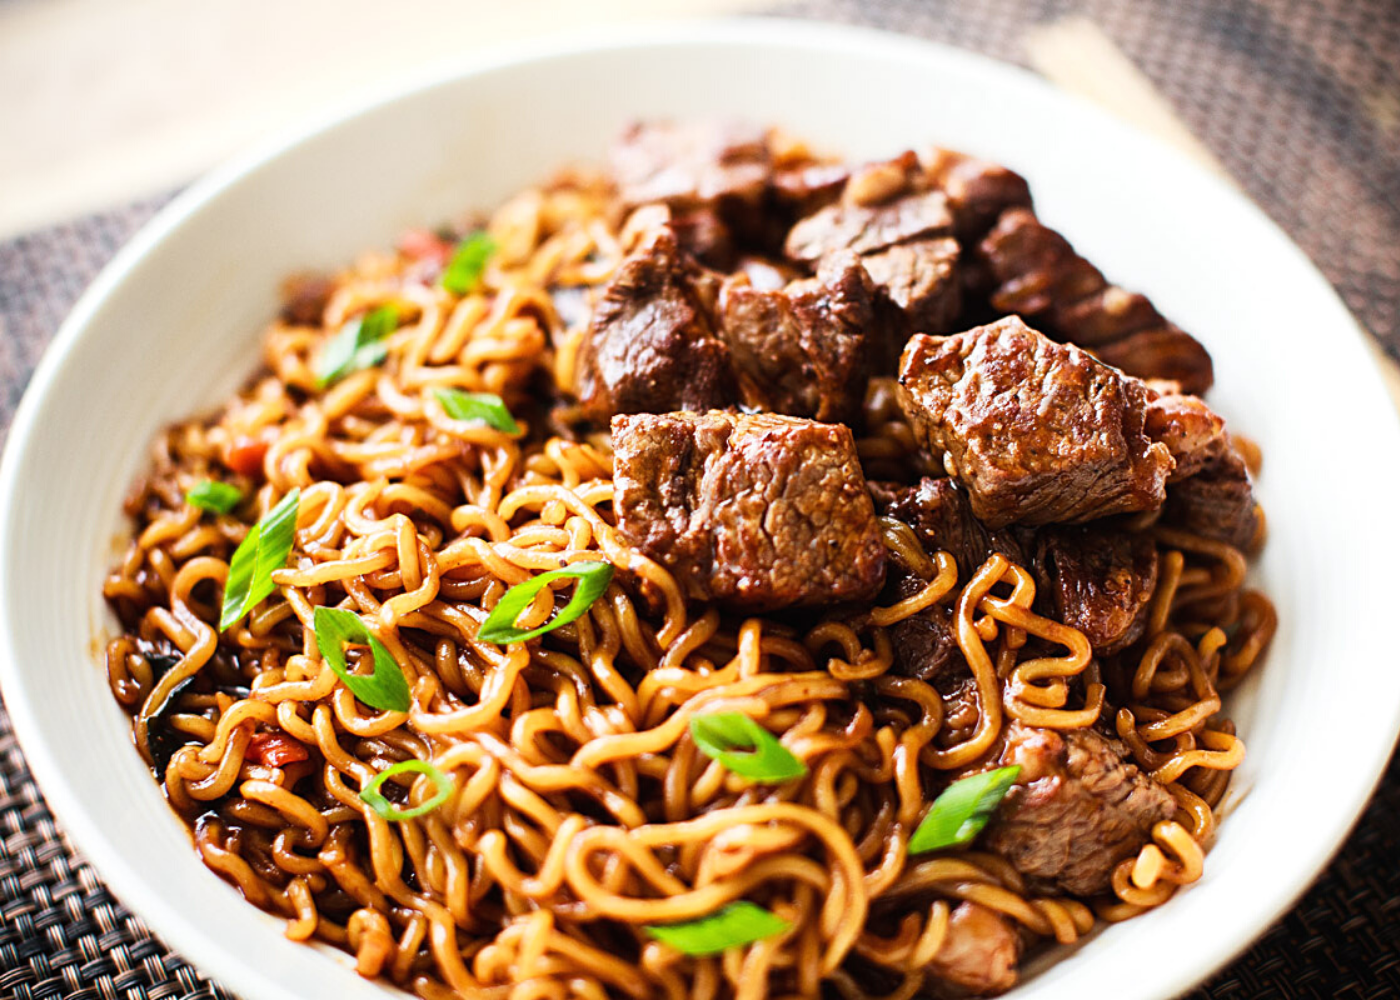 Slurp-worthy: Best upgraded instant noodle recipes for an easy feast